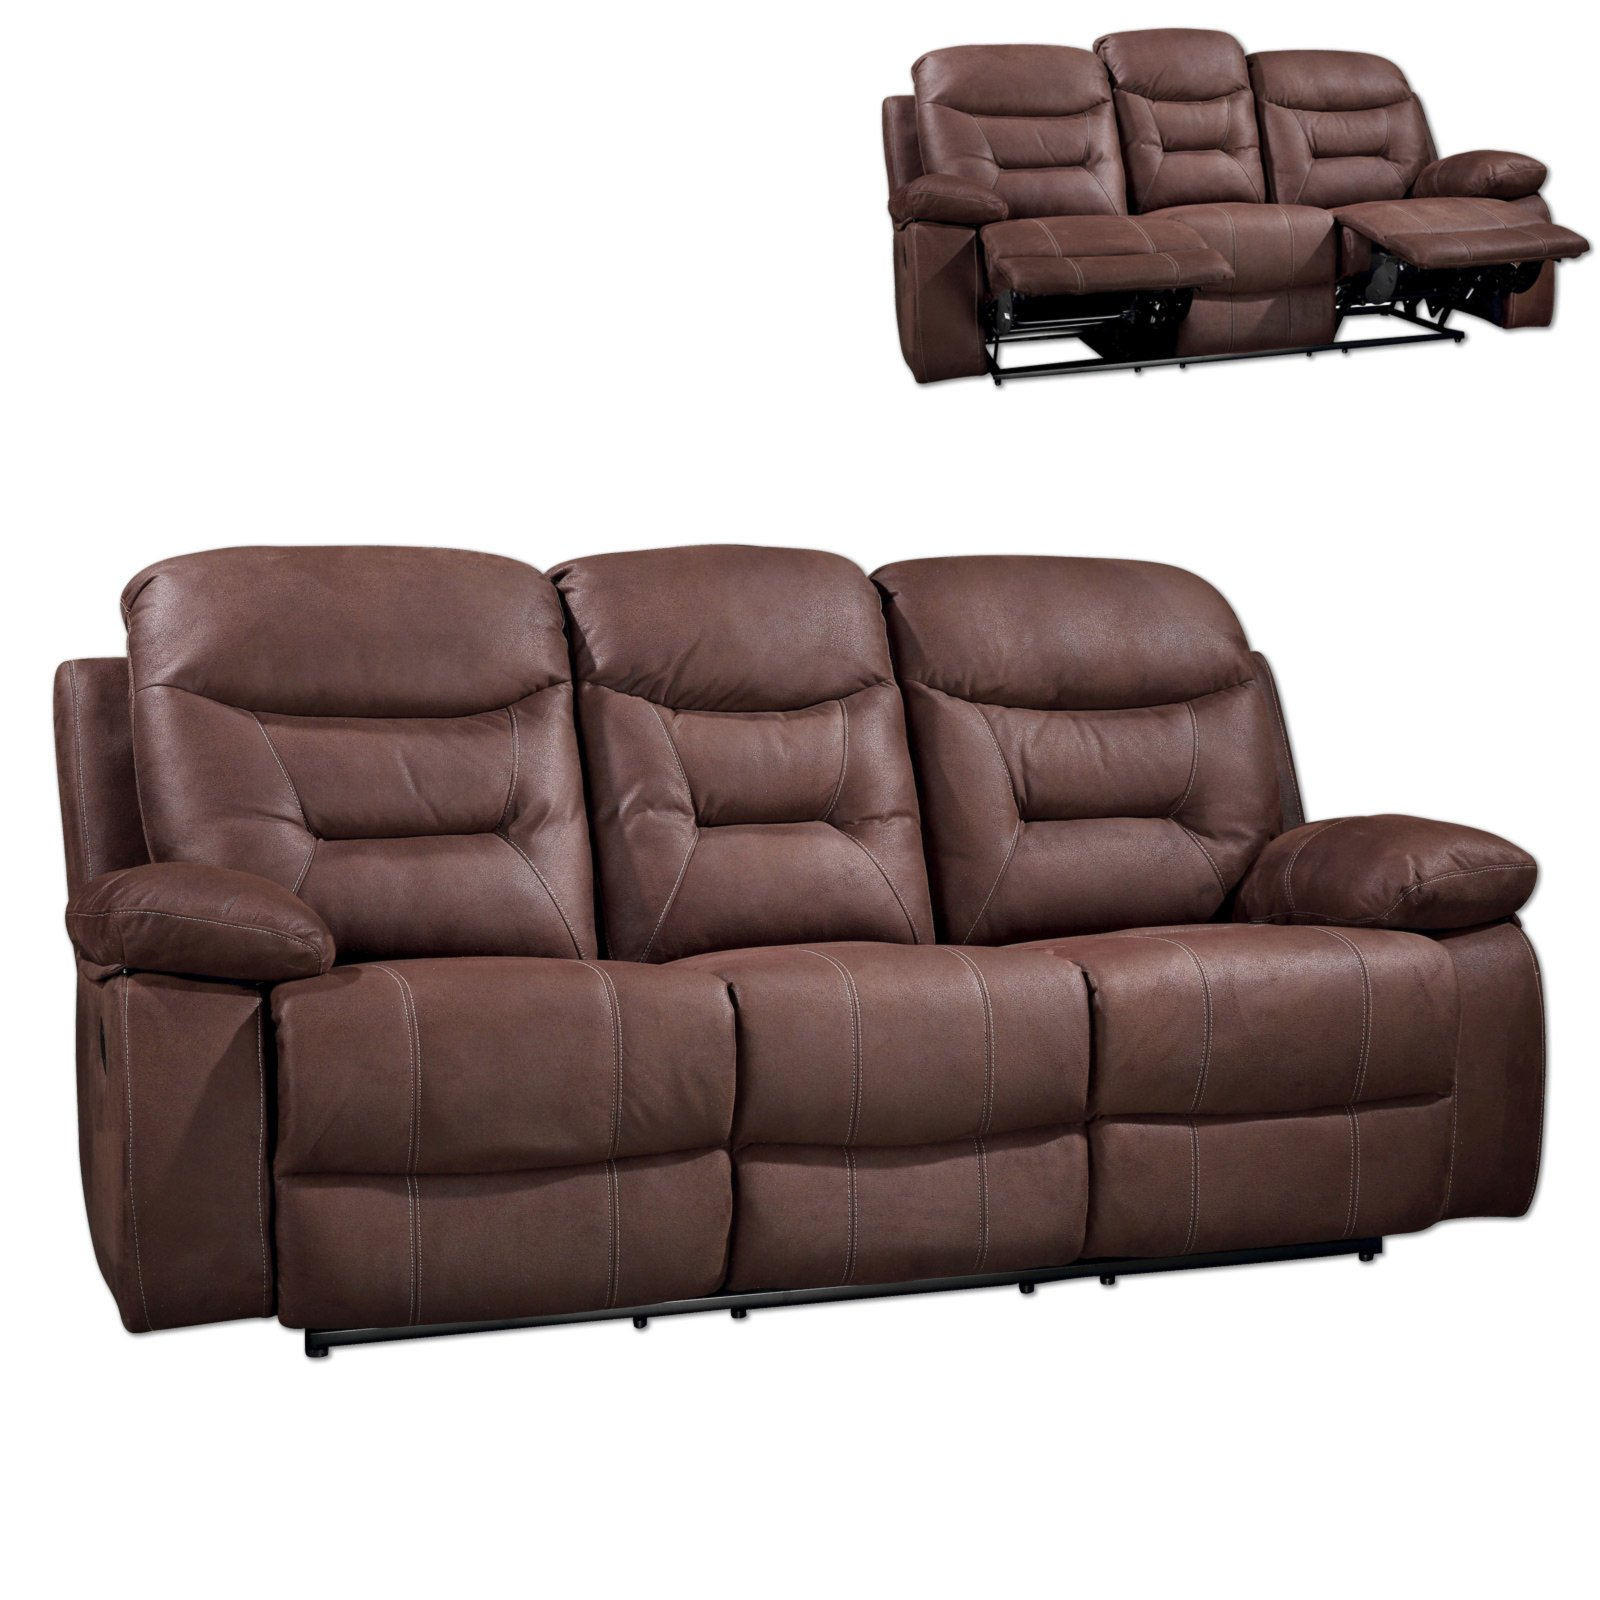 3 sitzer sofa braun relaxfunktion for 3 sitzer sofa mit relaxfunktion